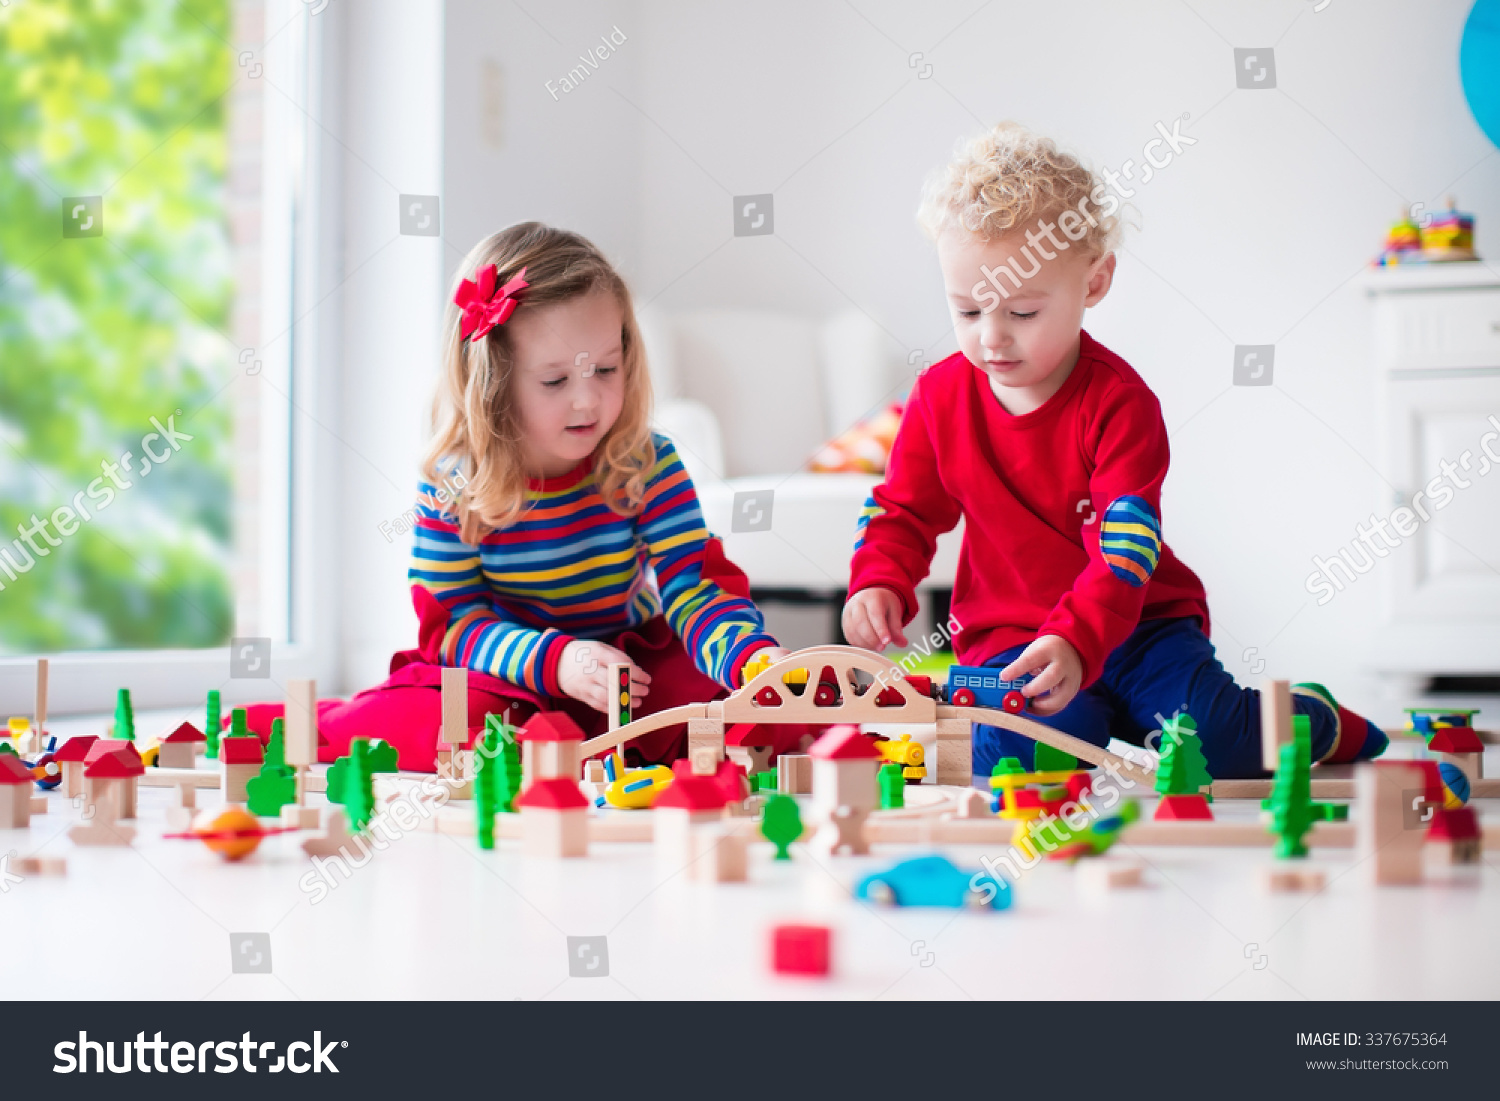 airplane toddler toys with Children Playing Wooden Train Toddler Kid 337675364 on Air Travel Essentials Kit K01 0489906 9000 in addition 10 Top Toys For Builders also Car At Gas Station Color By Number moreover Toy Airplanes For Children in addition Lovely Girl Toddler Bedding Sets Ideas.